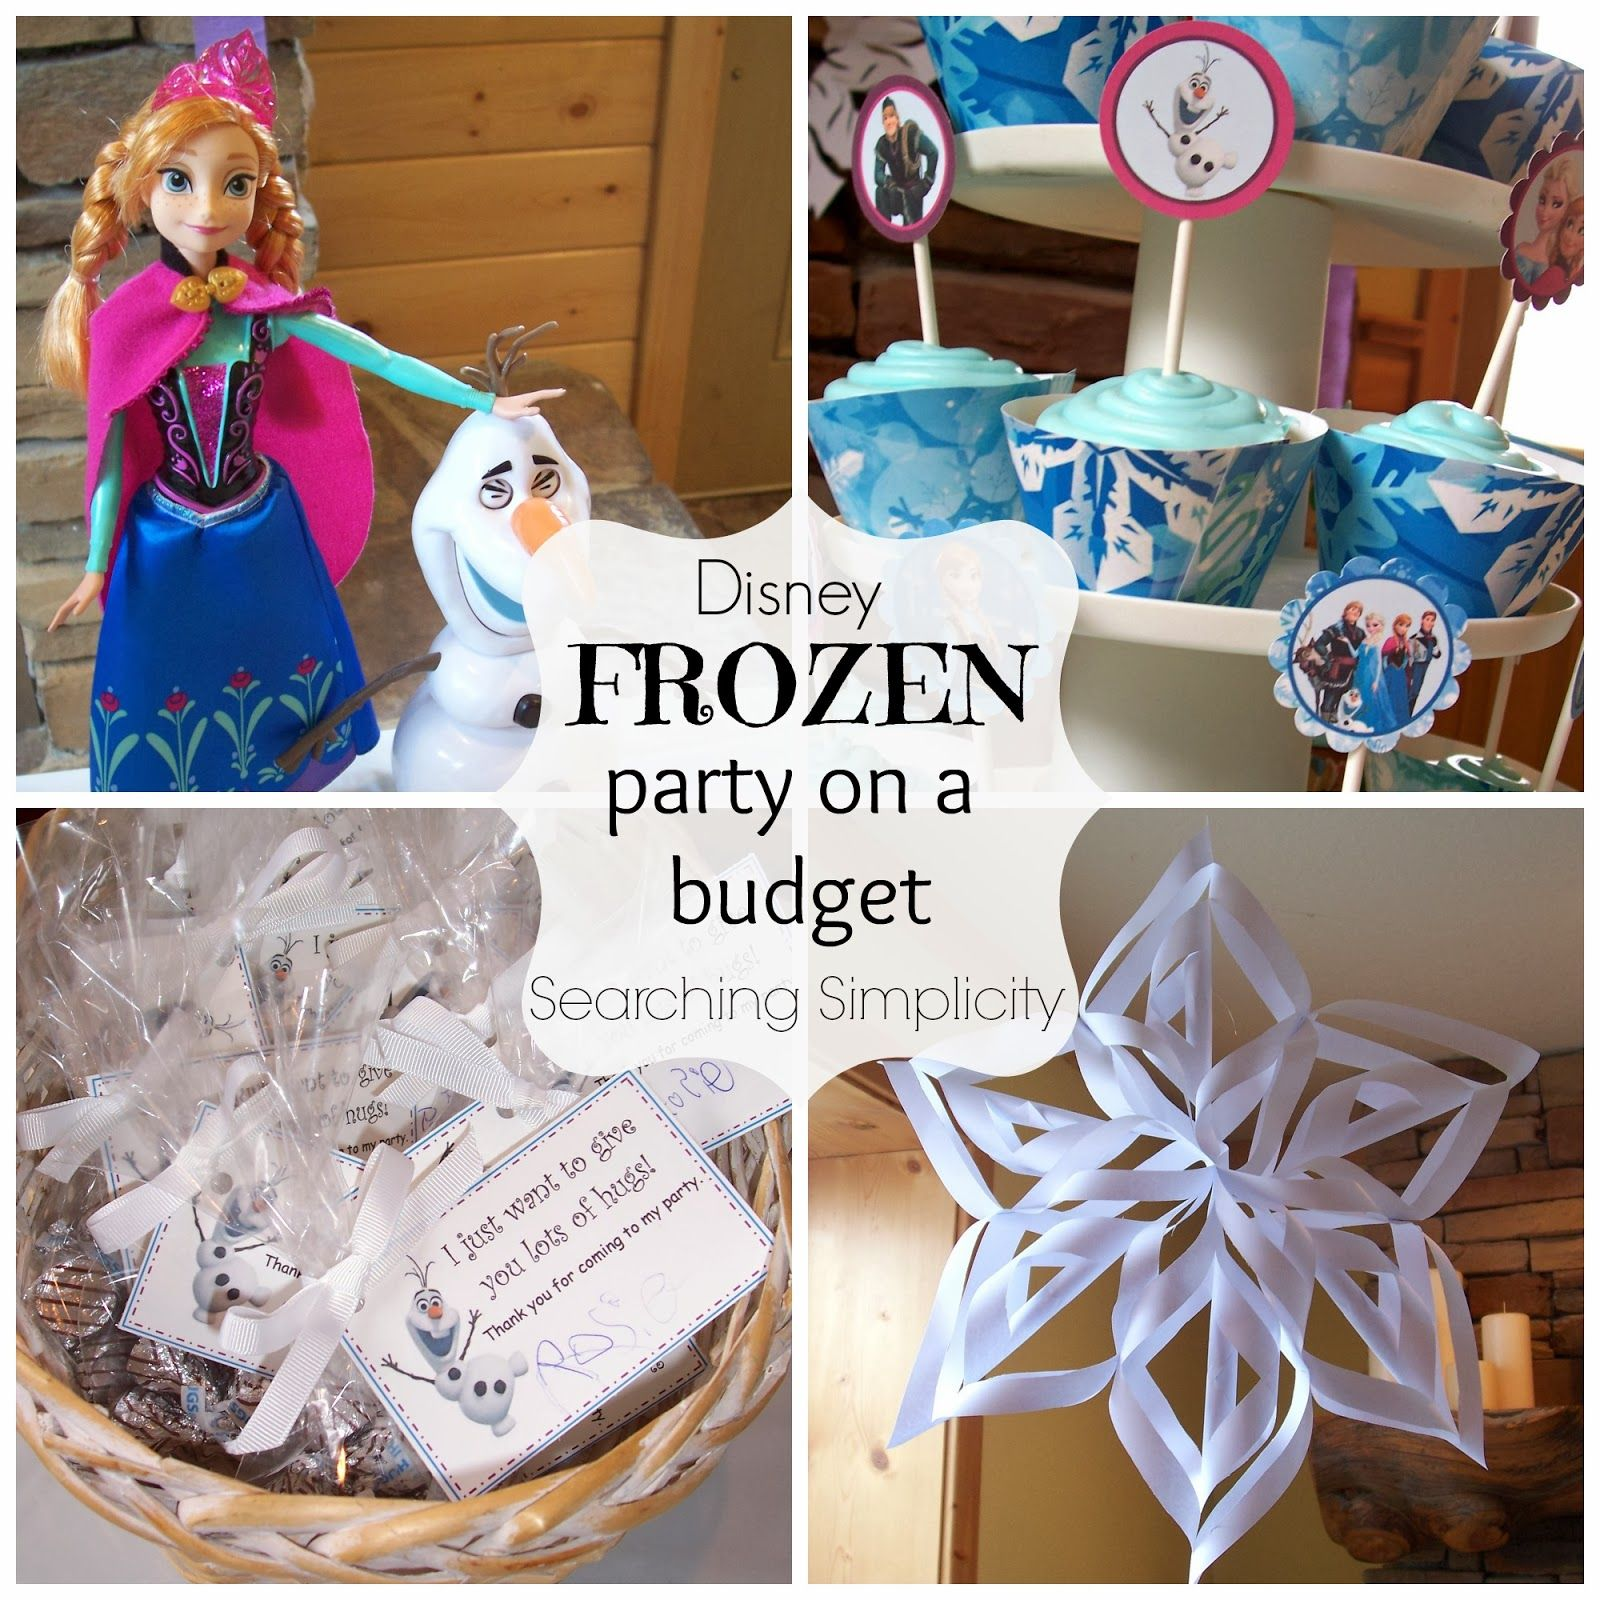 FROZEN birthday party ideas from Searching Simplicity Lots of links